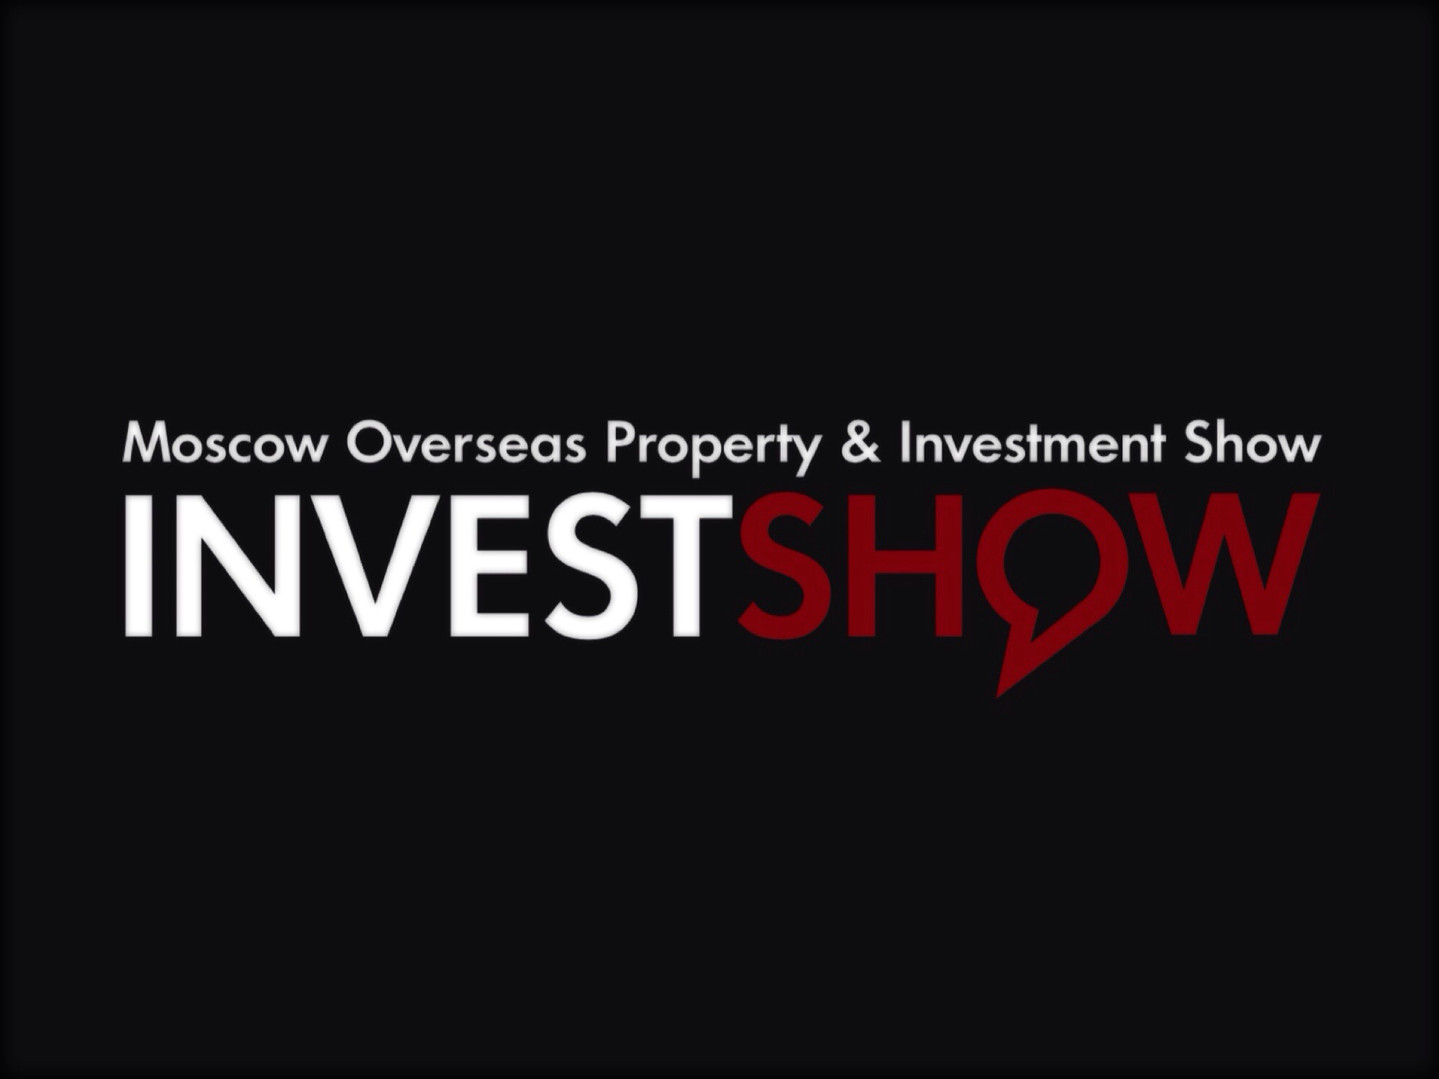 INVEST SHOW Moscow